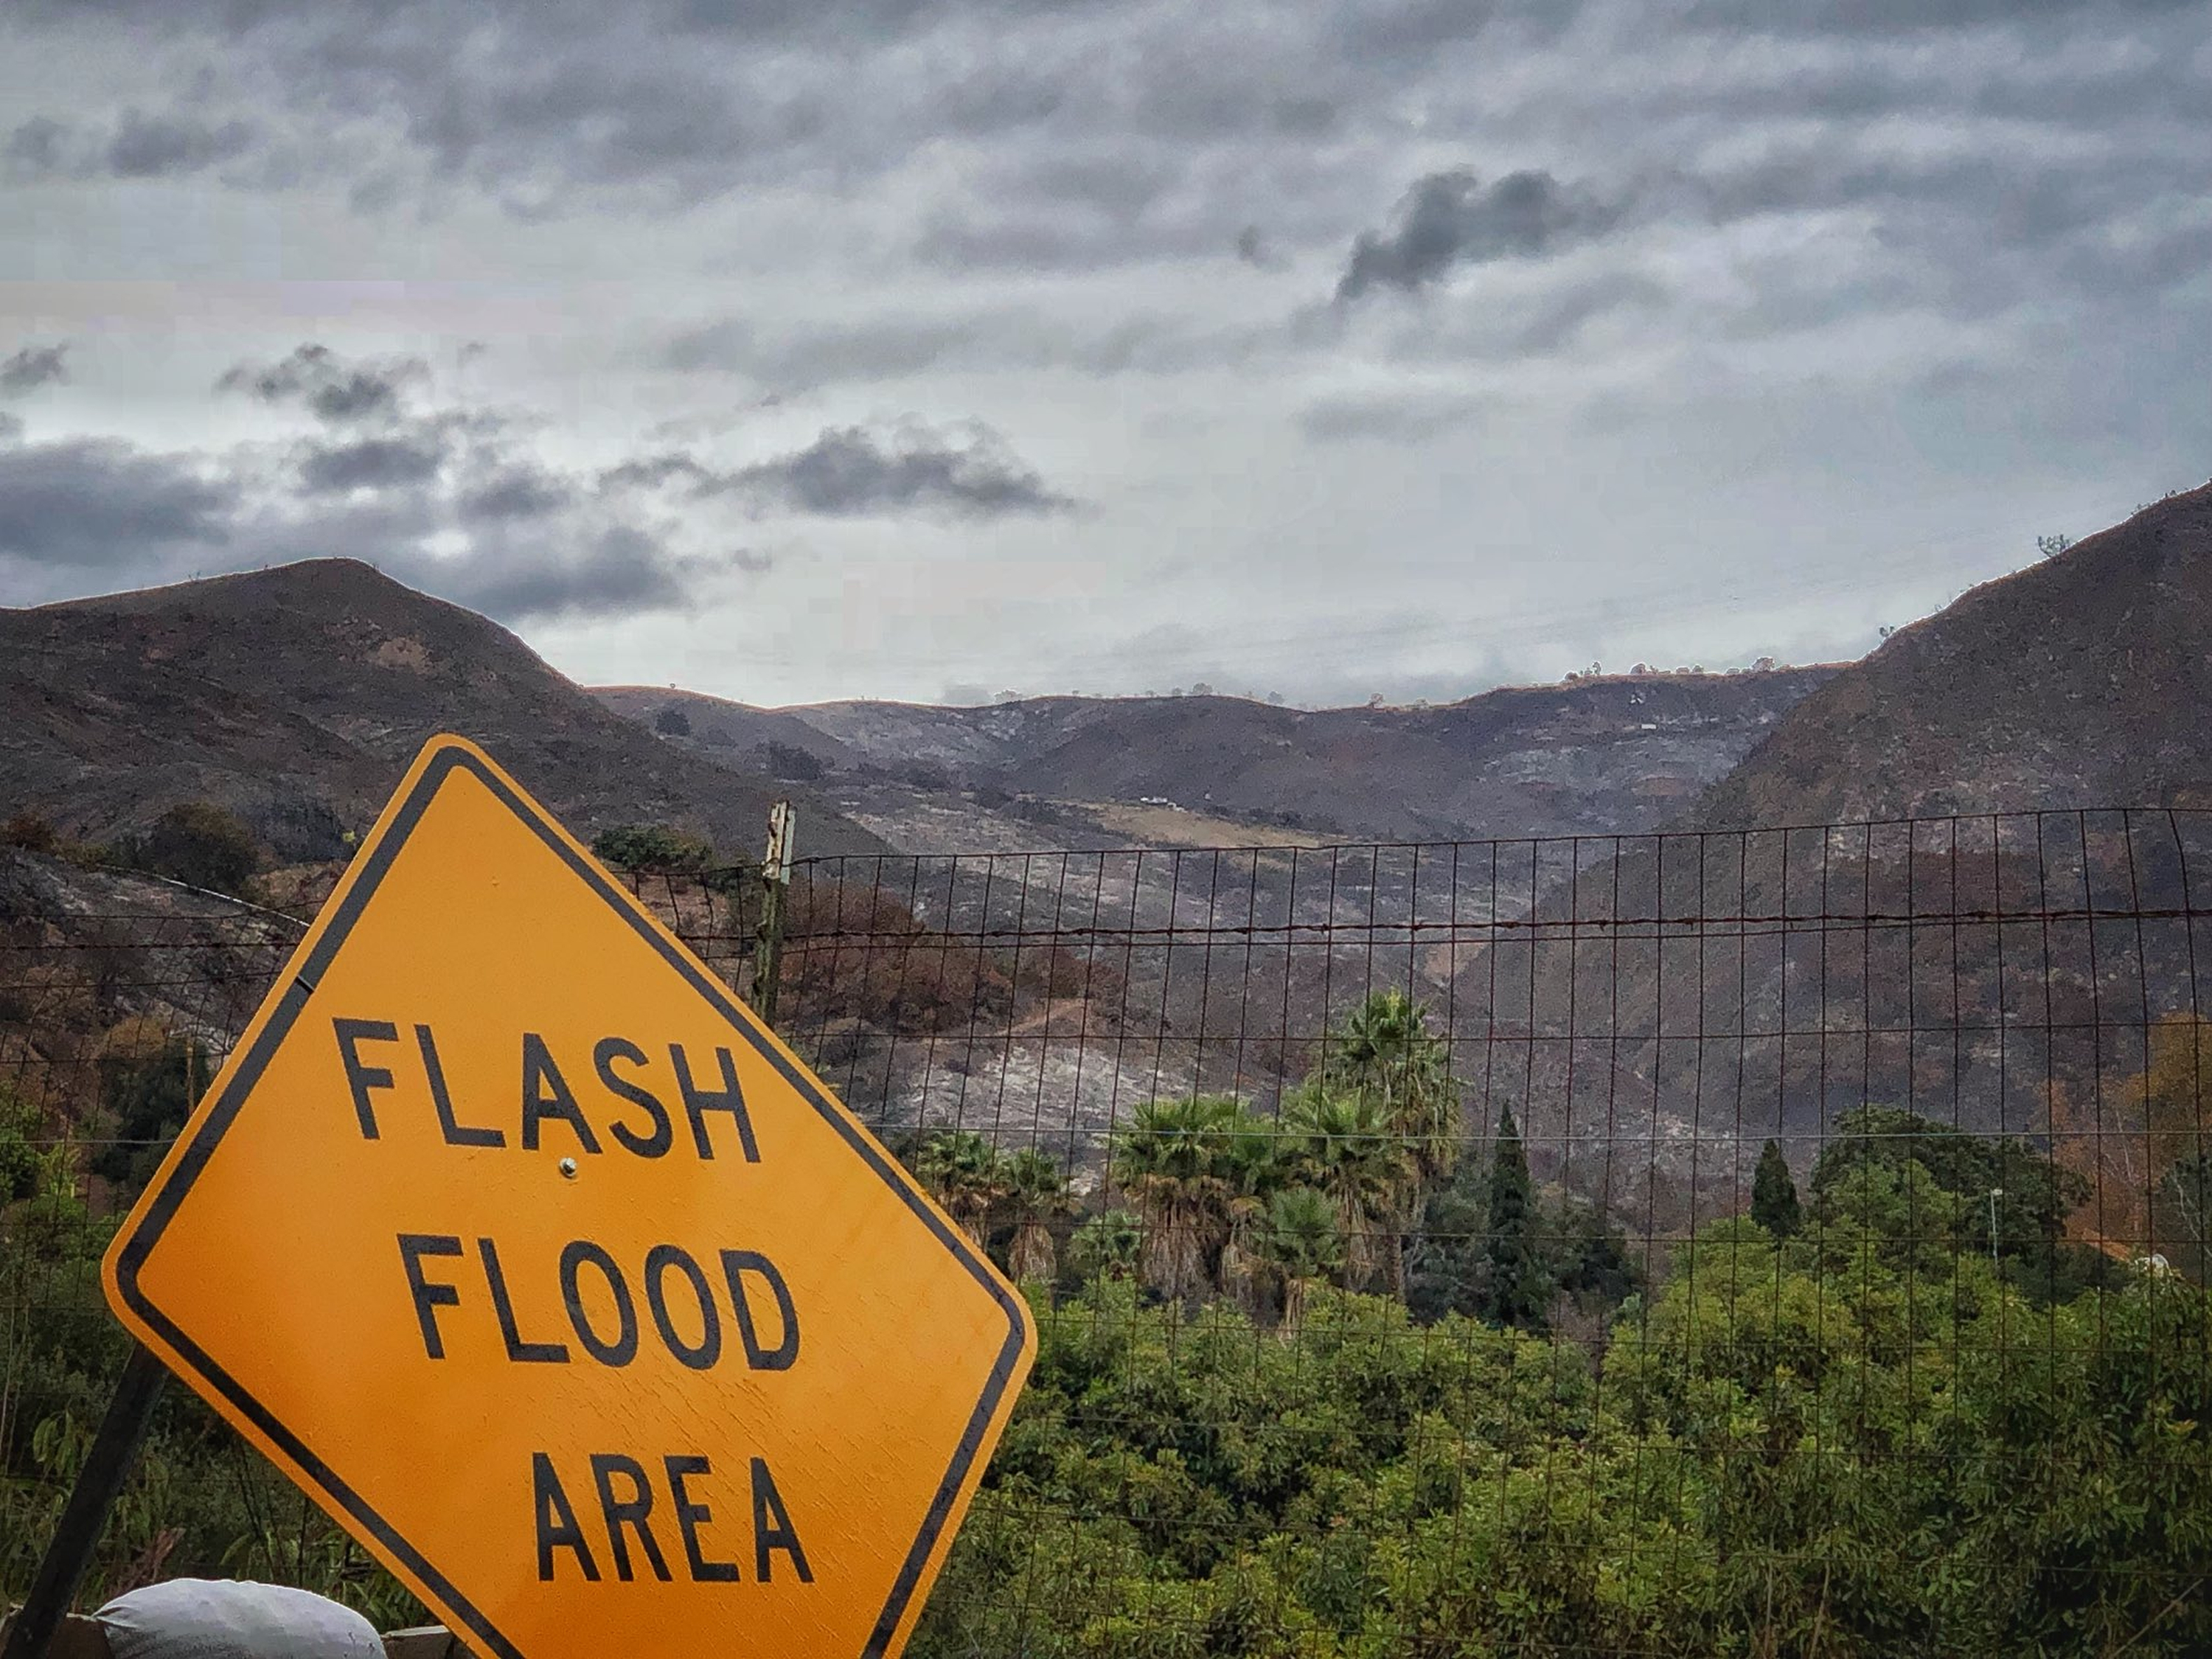 In this photo provided by Santa Barbara County Fire Department, a flash flood area sign is posted, as evacuations have been issued for several fire-ravaged communities in Santa Barbara, Calif., Monday, Jan. 8, 2018. Property owners stacked sandbags in devastated Northern California wine country Monday as authorities in Southern California ordered about 21,000 people to evacuate below hillsides burned by the state's largest wildfire in history. (Mike Eliason/Santa Barbara County Fire Department via AP)